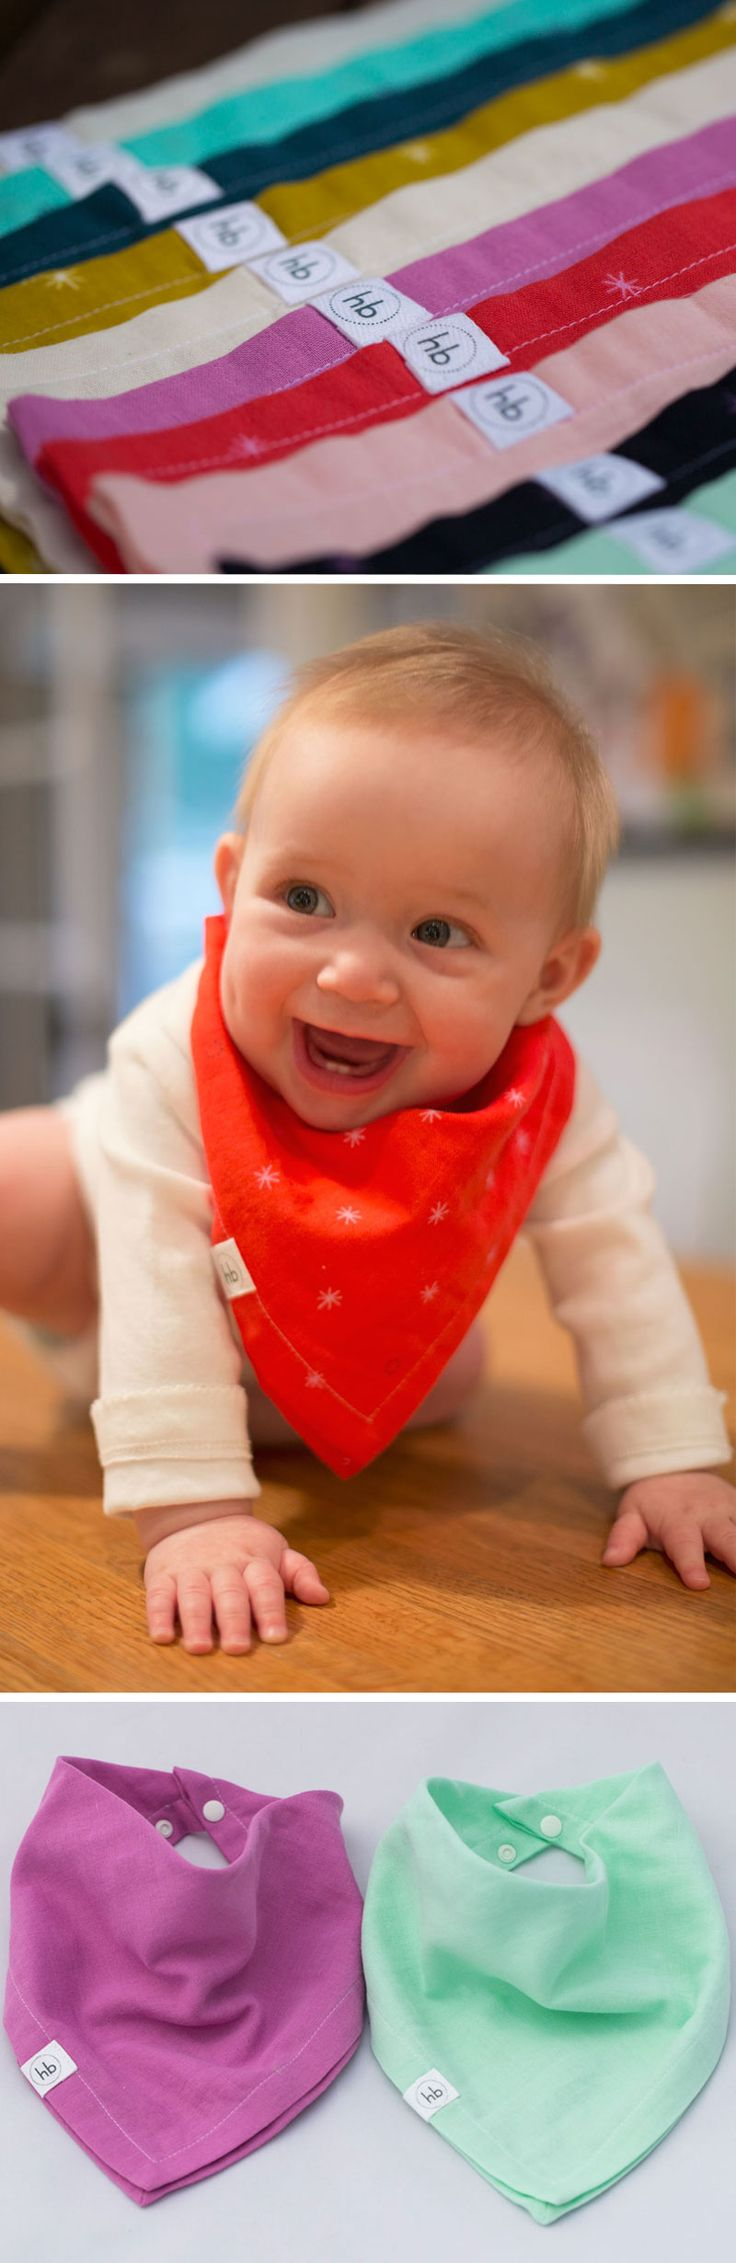 Ollie Bandana Drool Bib   Hemming Birds Boutique 10 different colors of soft, absorbent double gauze for your stylish little one. The won't want to take it off :) Unique gift for the mom's who have everything.